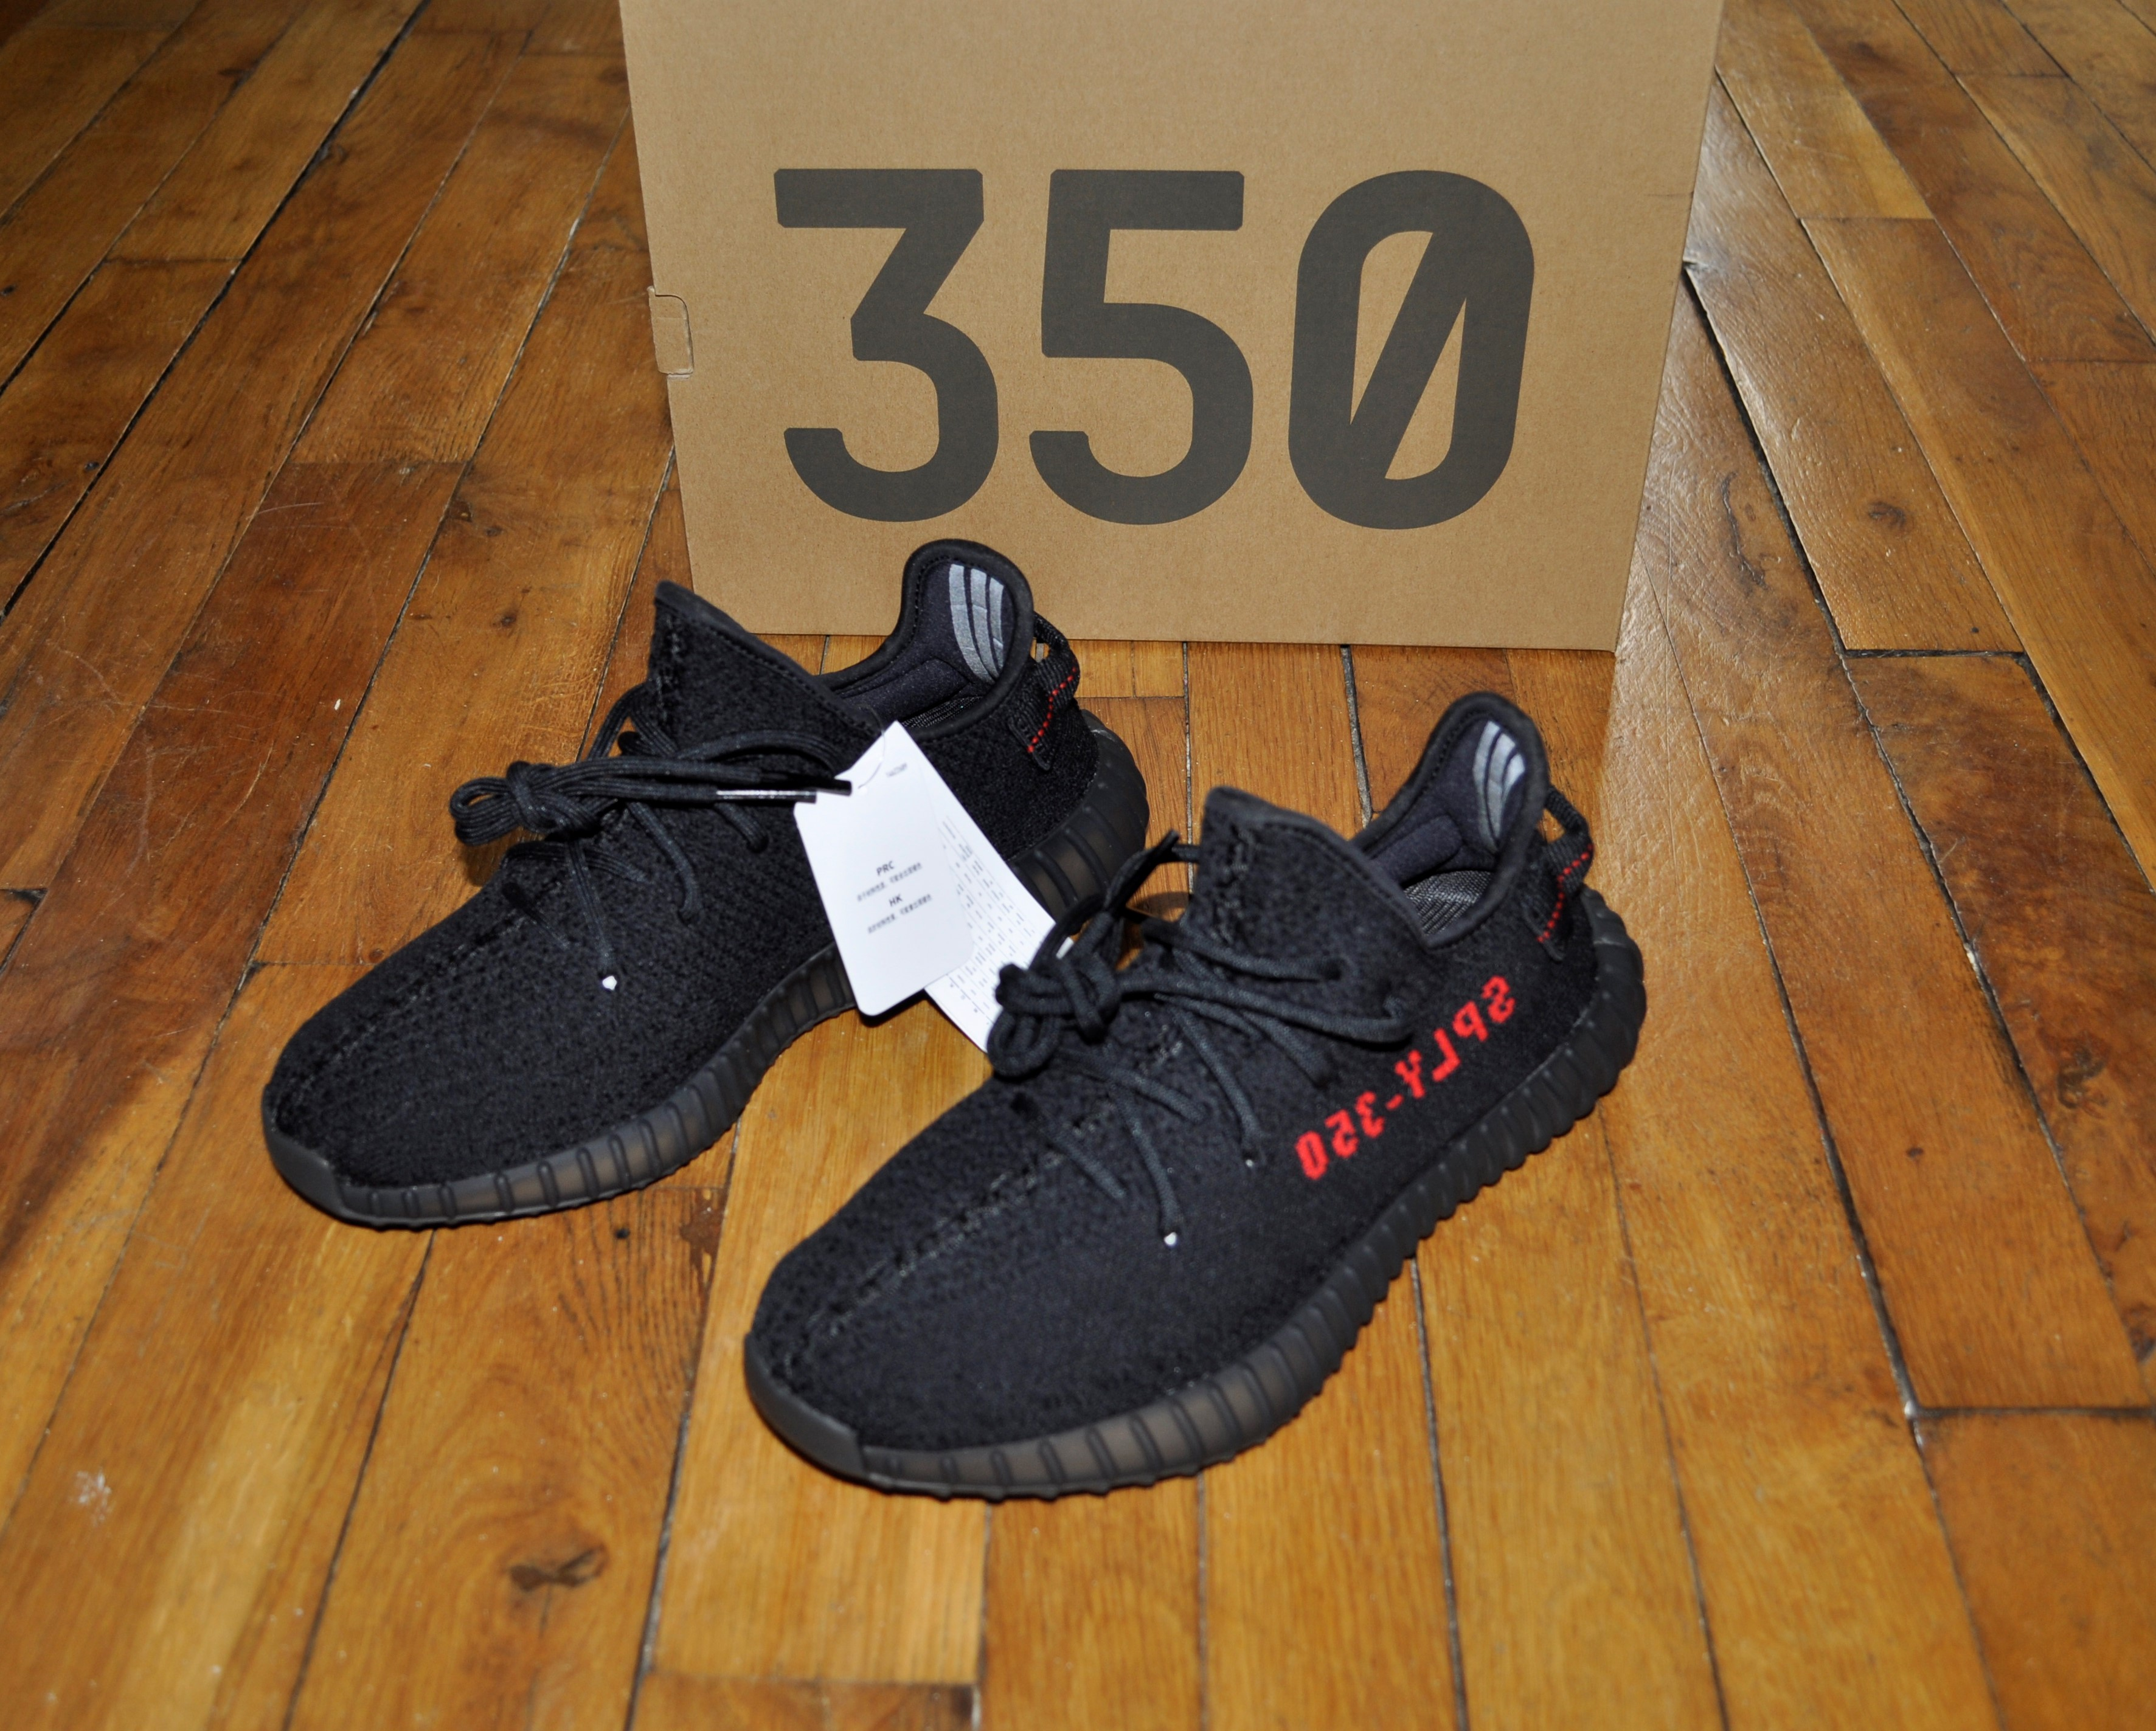 2a55106cb8f Adidas × Kanye West × Adidas Kanye West ×. Adidas Yeezy Boost 350 V2 Bred  Black Red CP9652 Size 7.5 Us 7 Uk ...